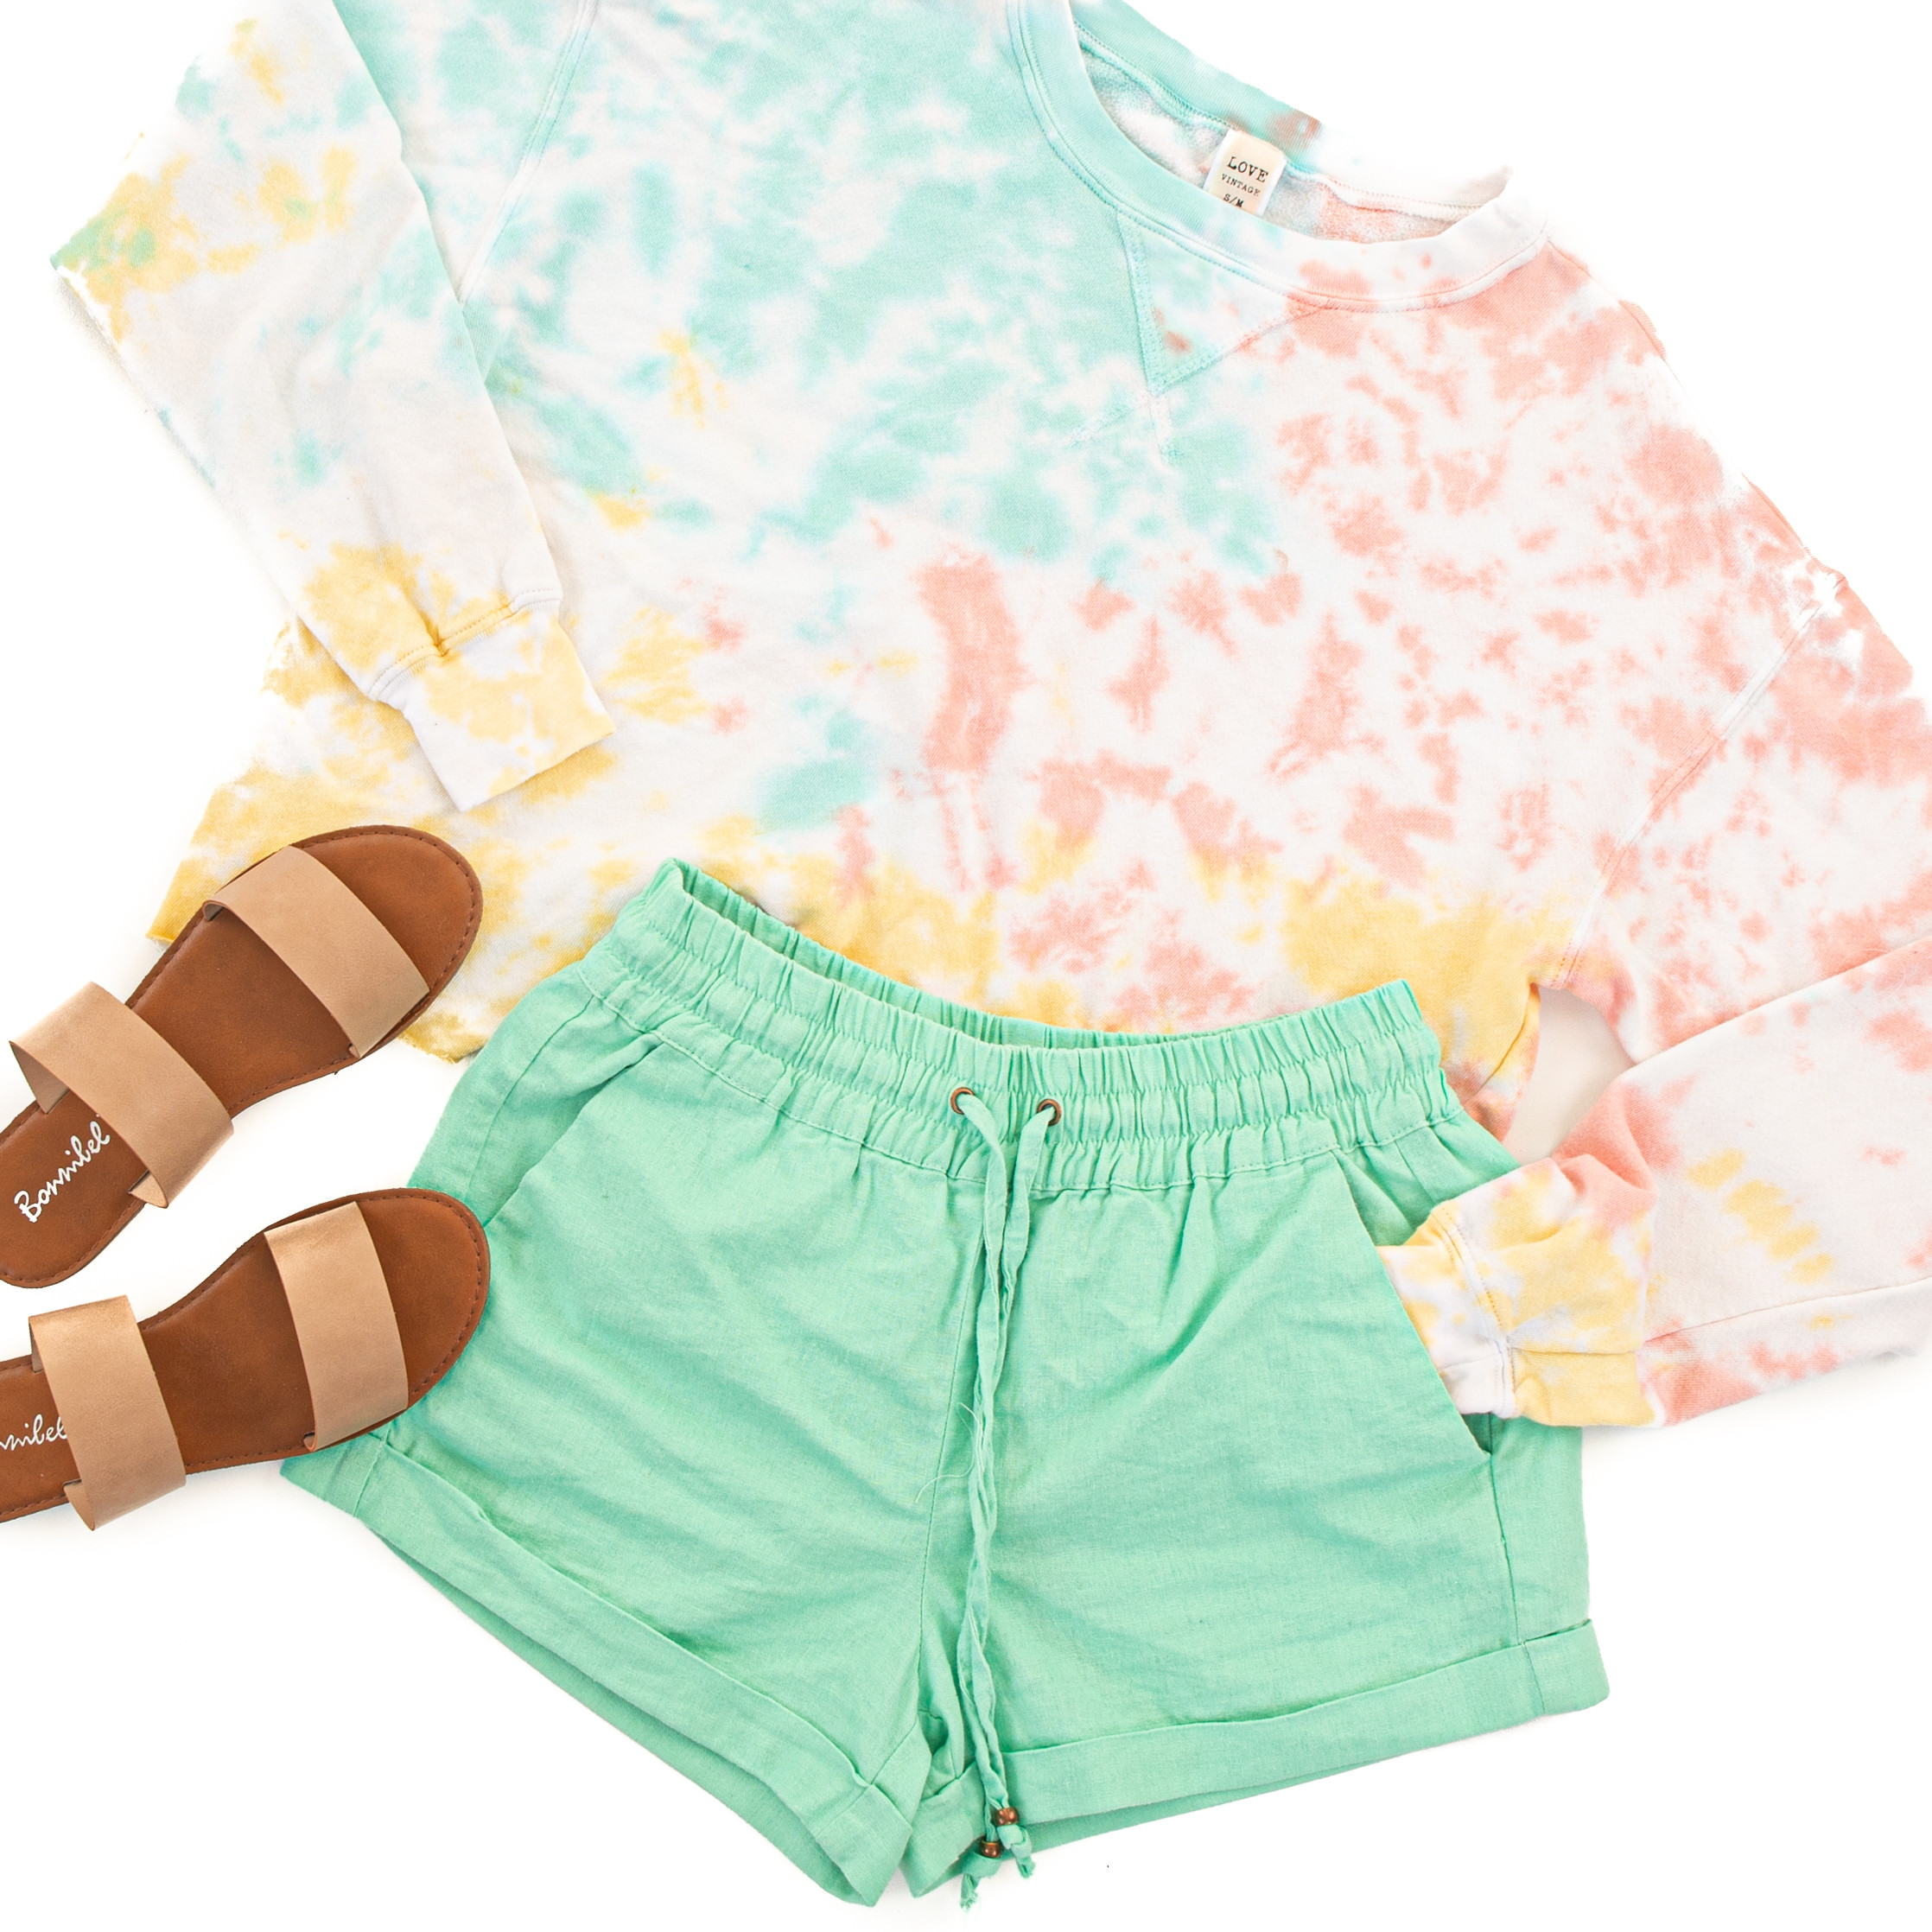 Mint Mid Rise Smocked Shorts with Pockets and Drawstring